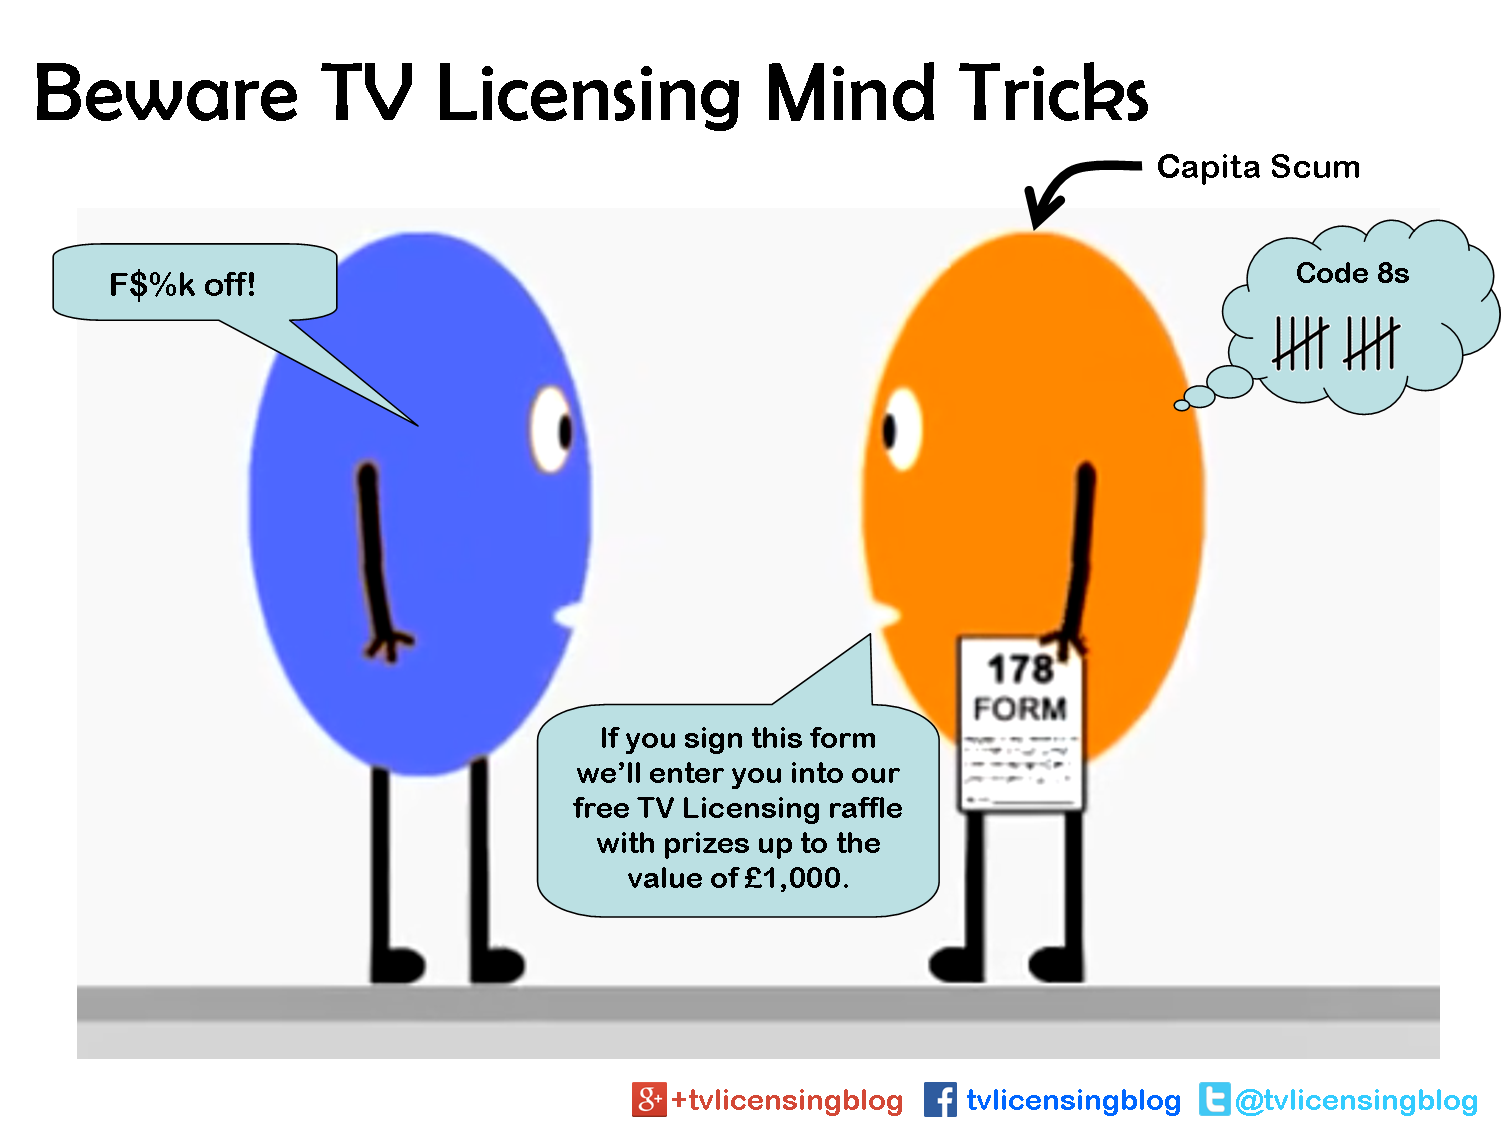 TV Licensing Tricks